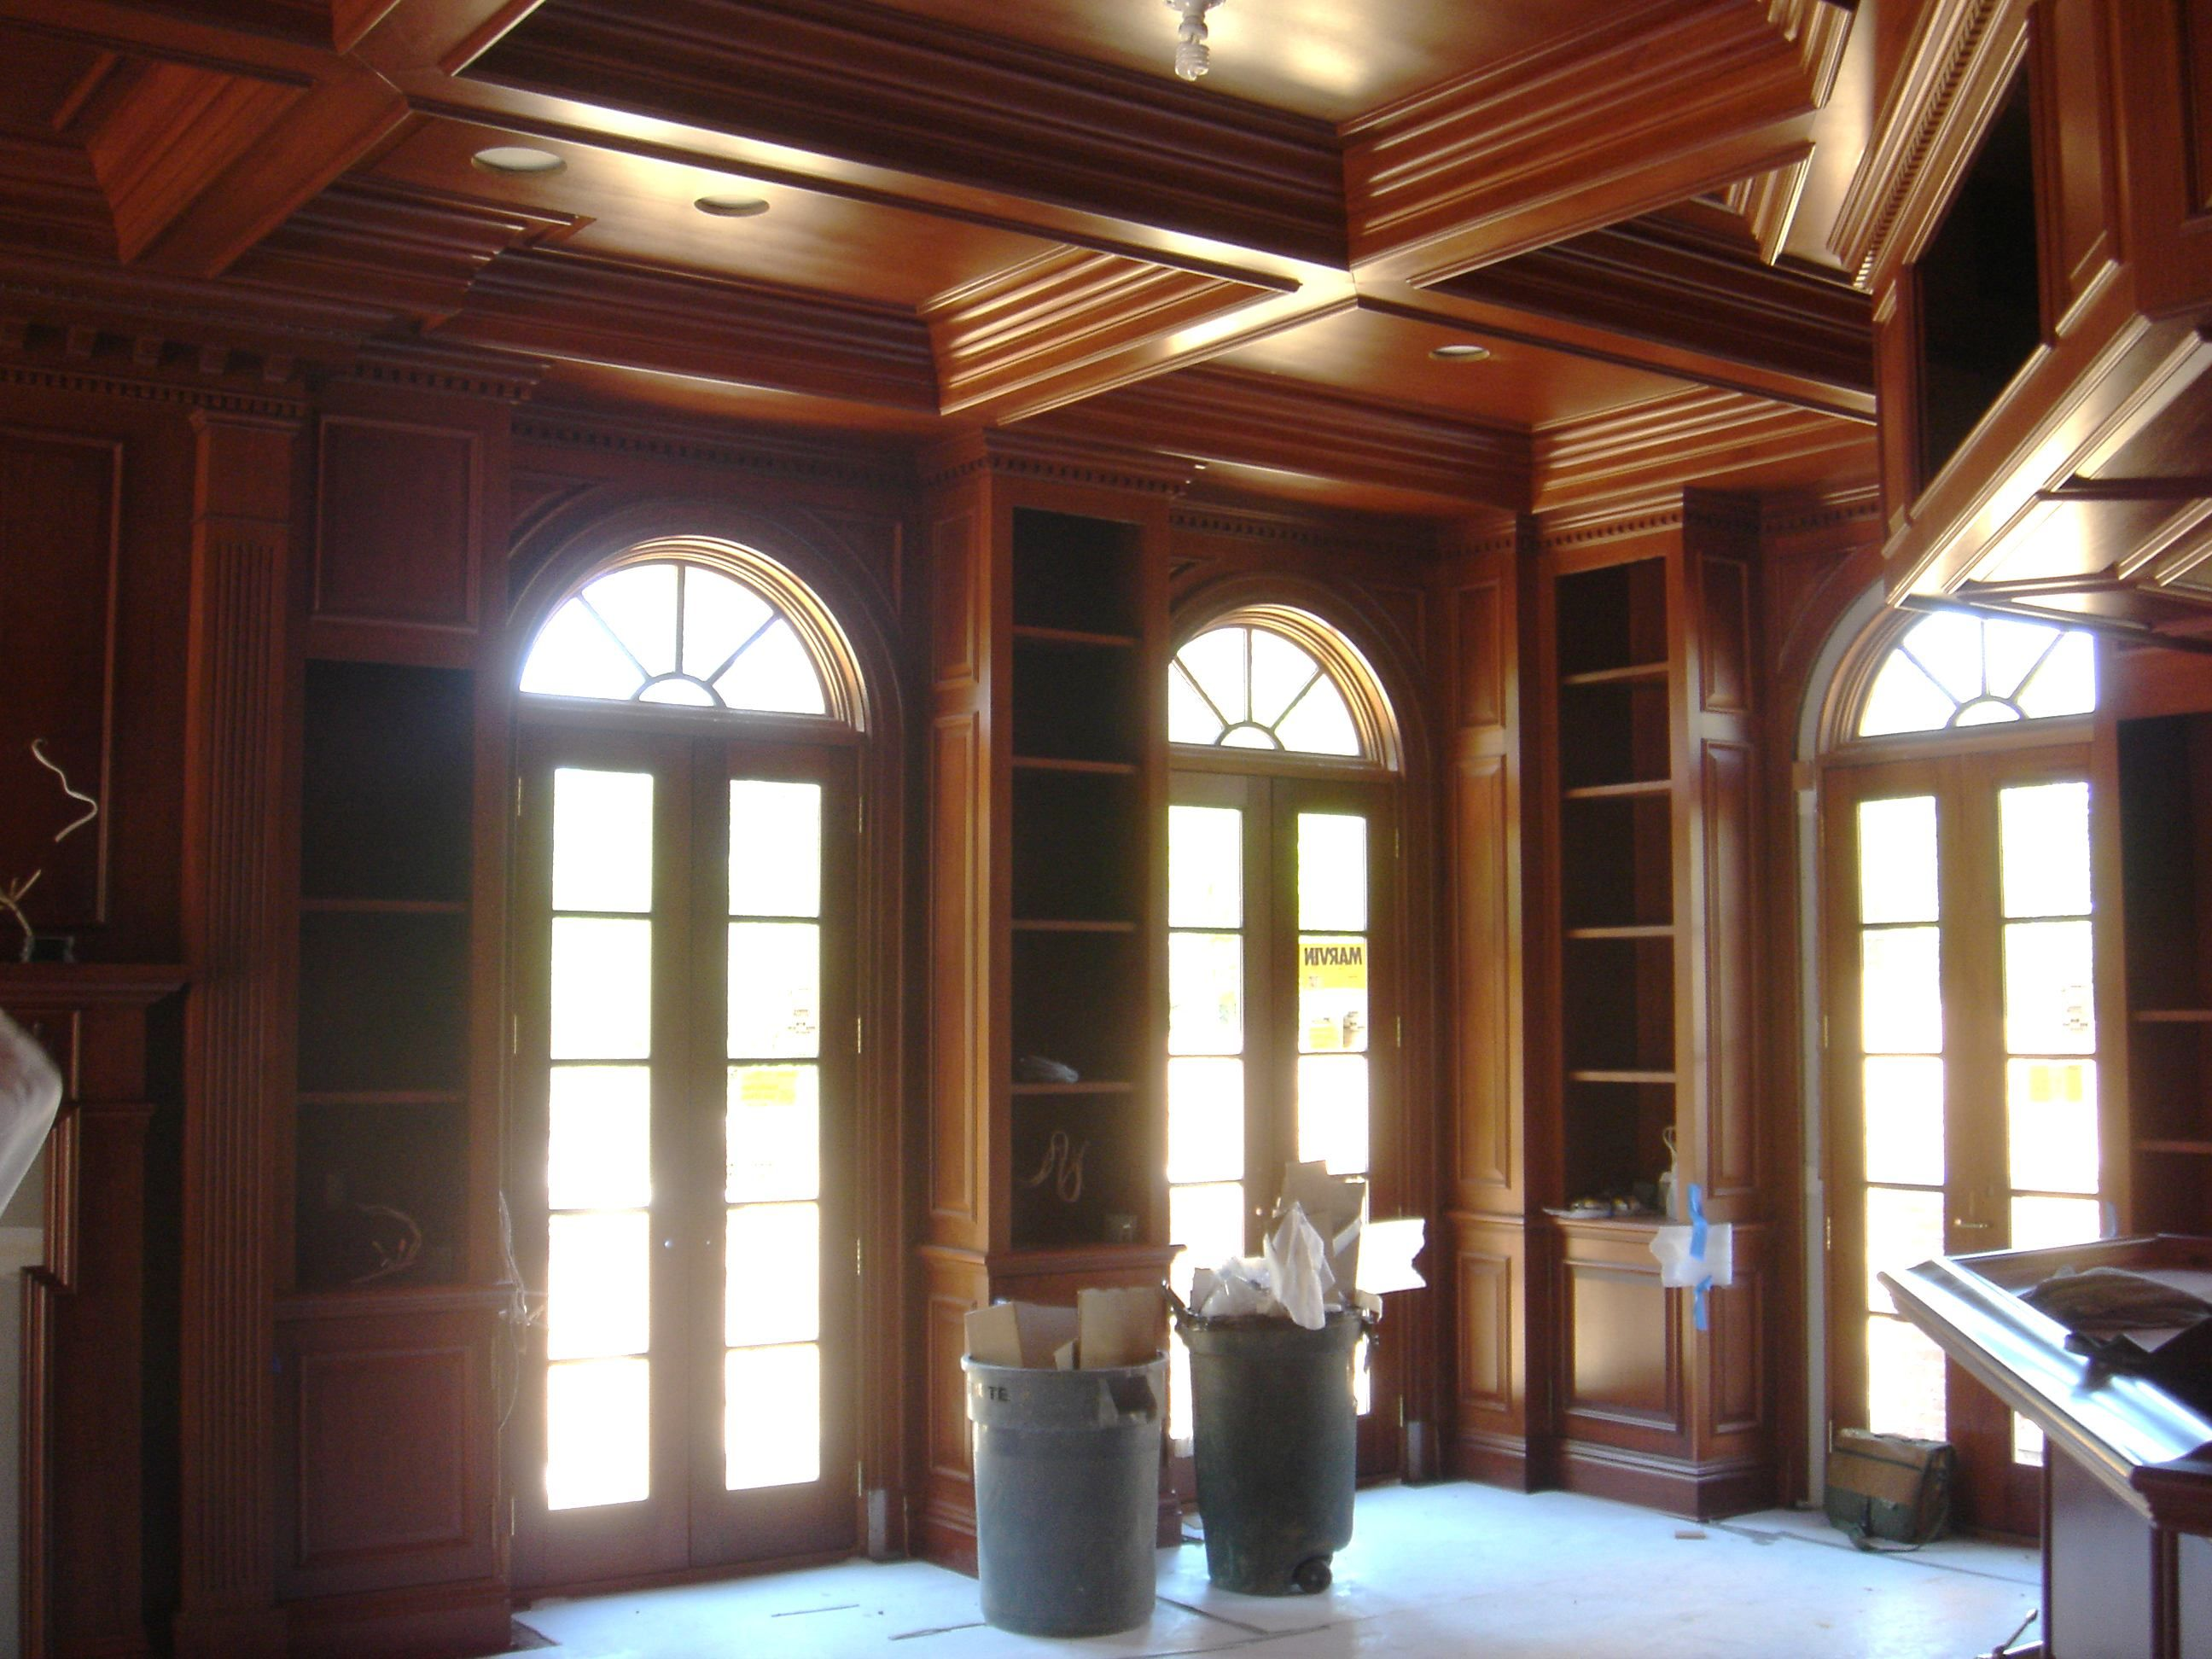 Superb img of wood panels and coffered ceiling Library Pinterest with #693A27 color and 2592x1944 pixels